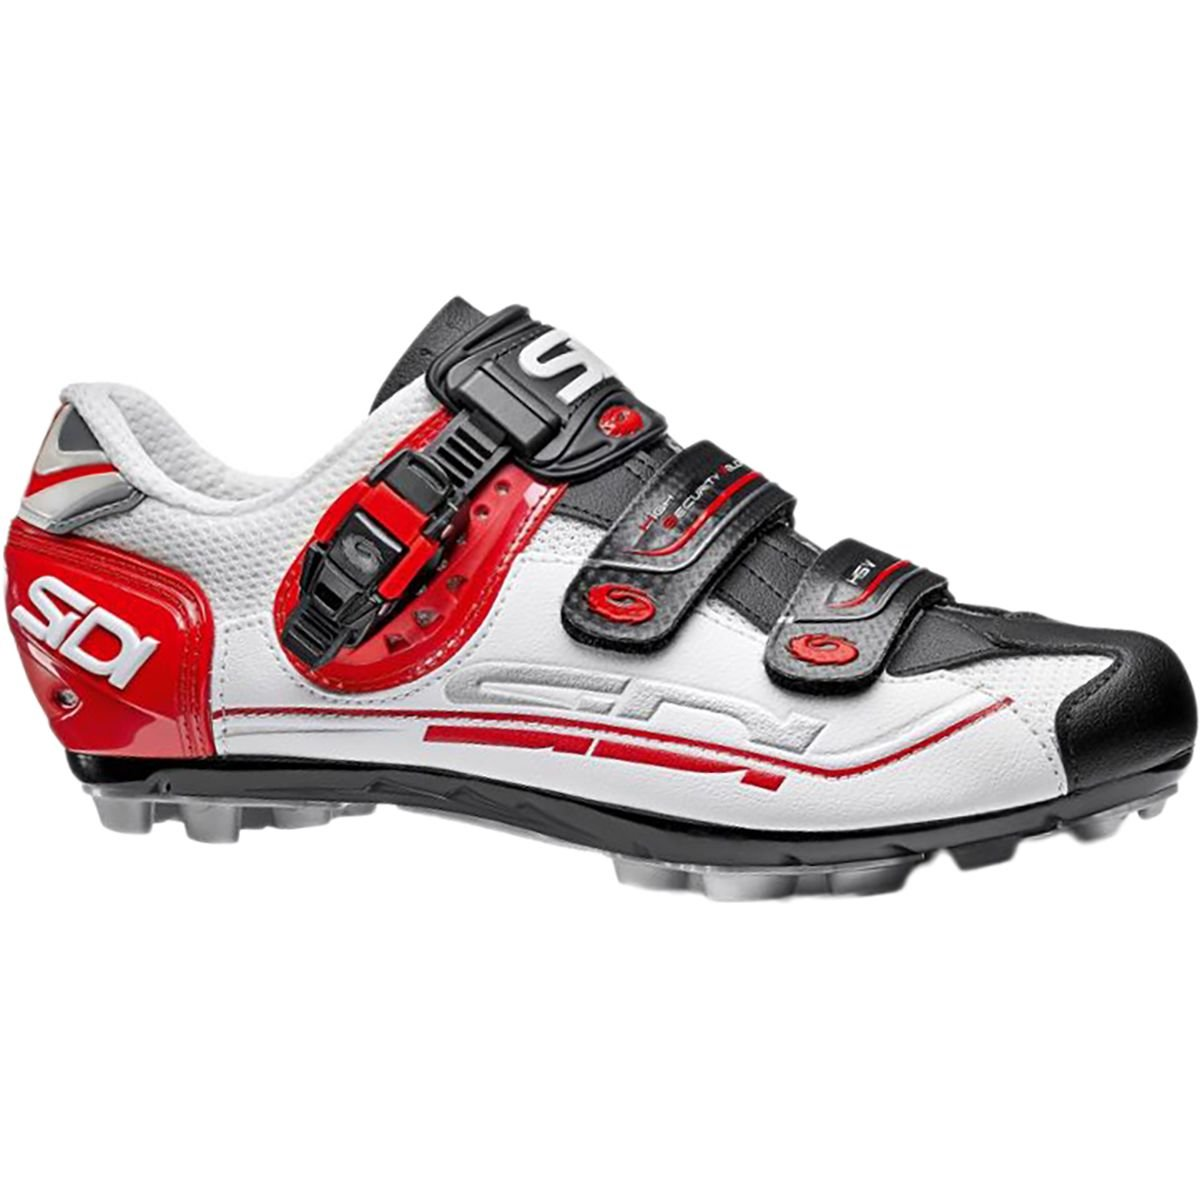 4ed74a2ef5c Galleon - Sidi Dominator Fit Cycling Shoe - Men s White Black Red ...